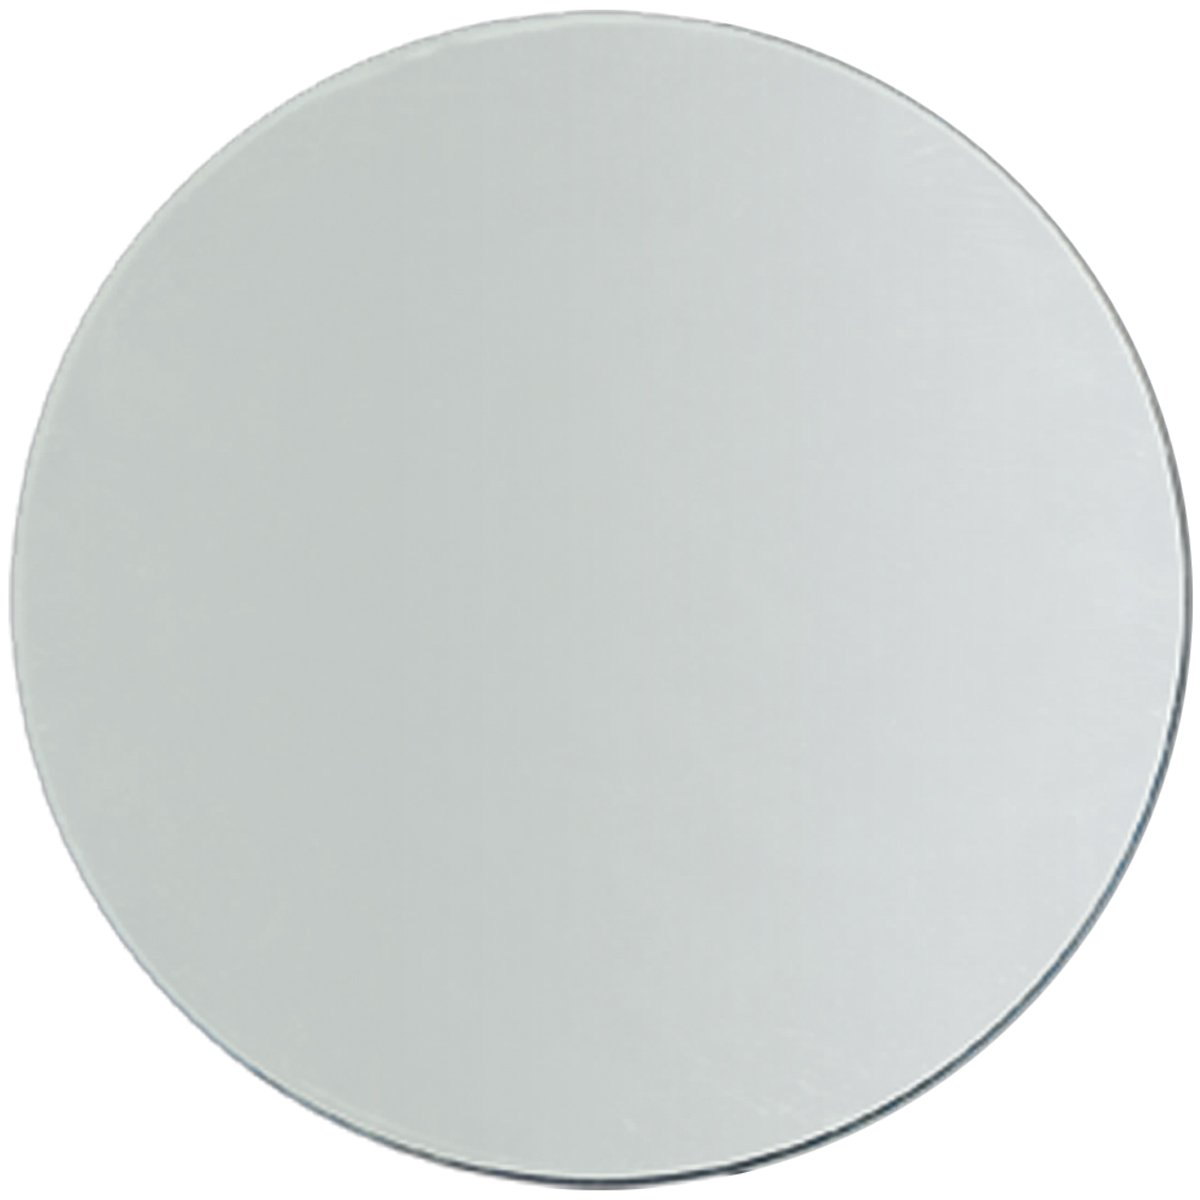 Darice mirrors wholesale images for Round mirror